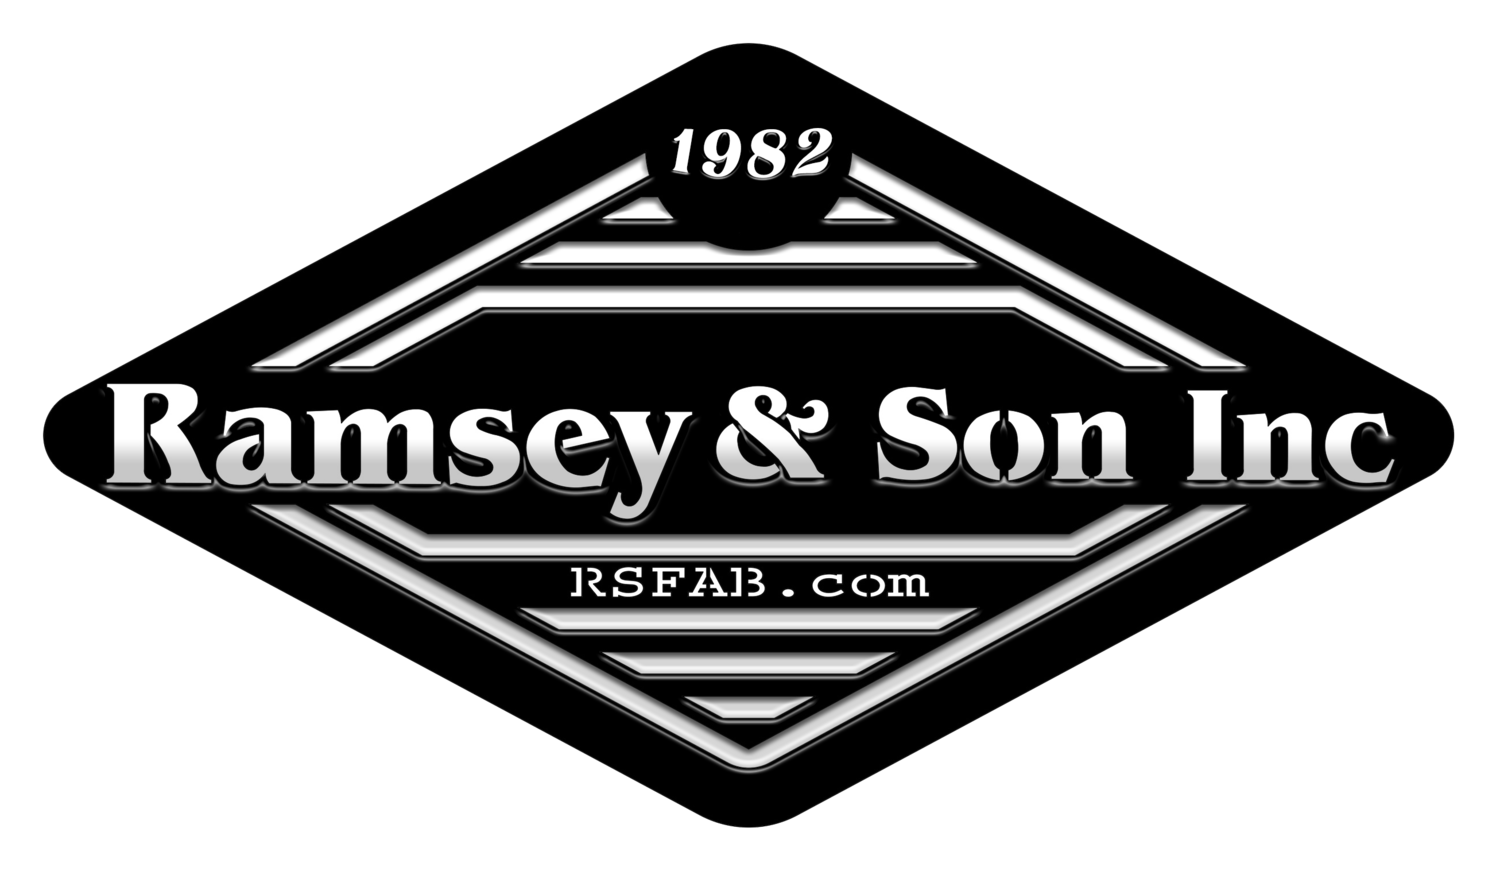 Ramsey and Son, Inc.